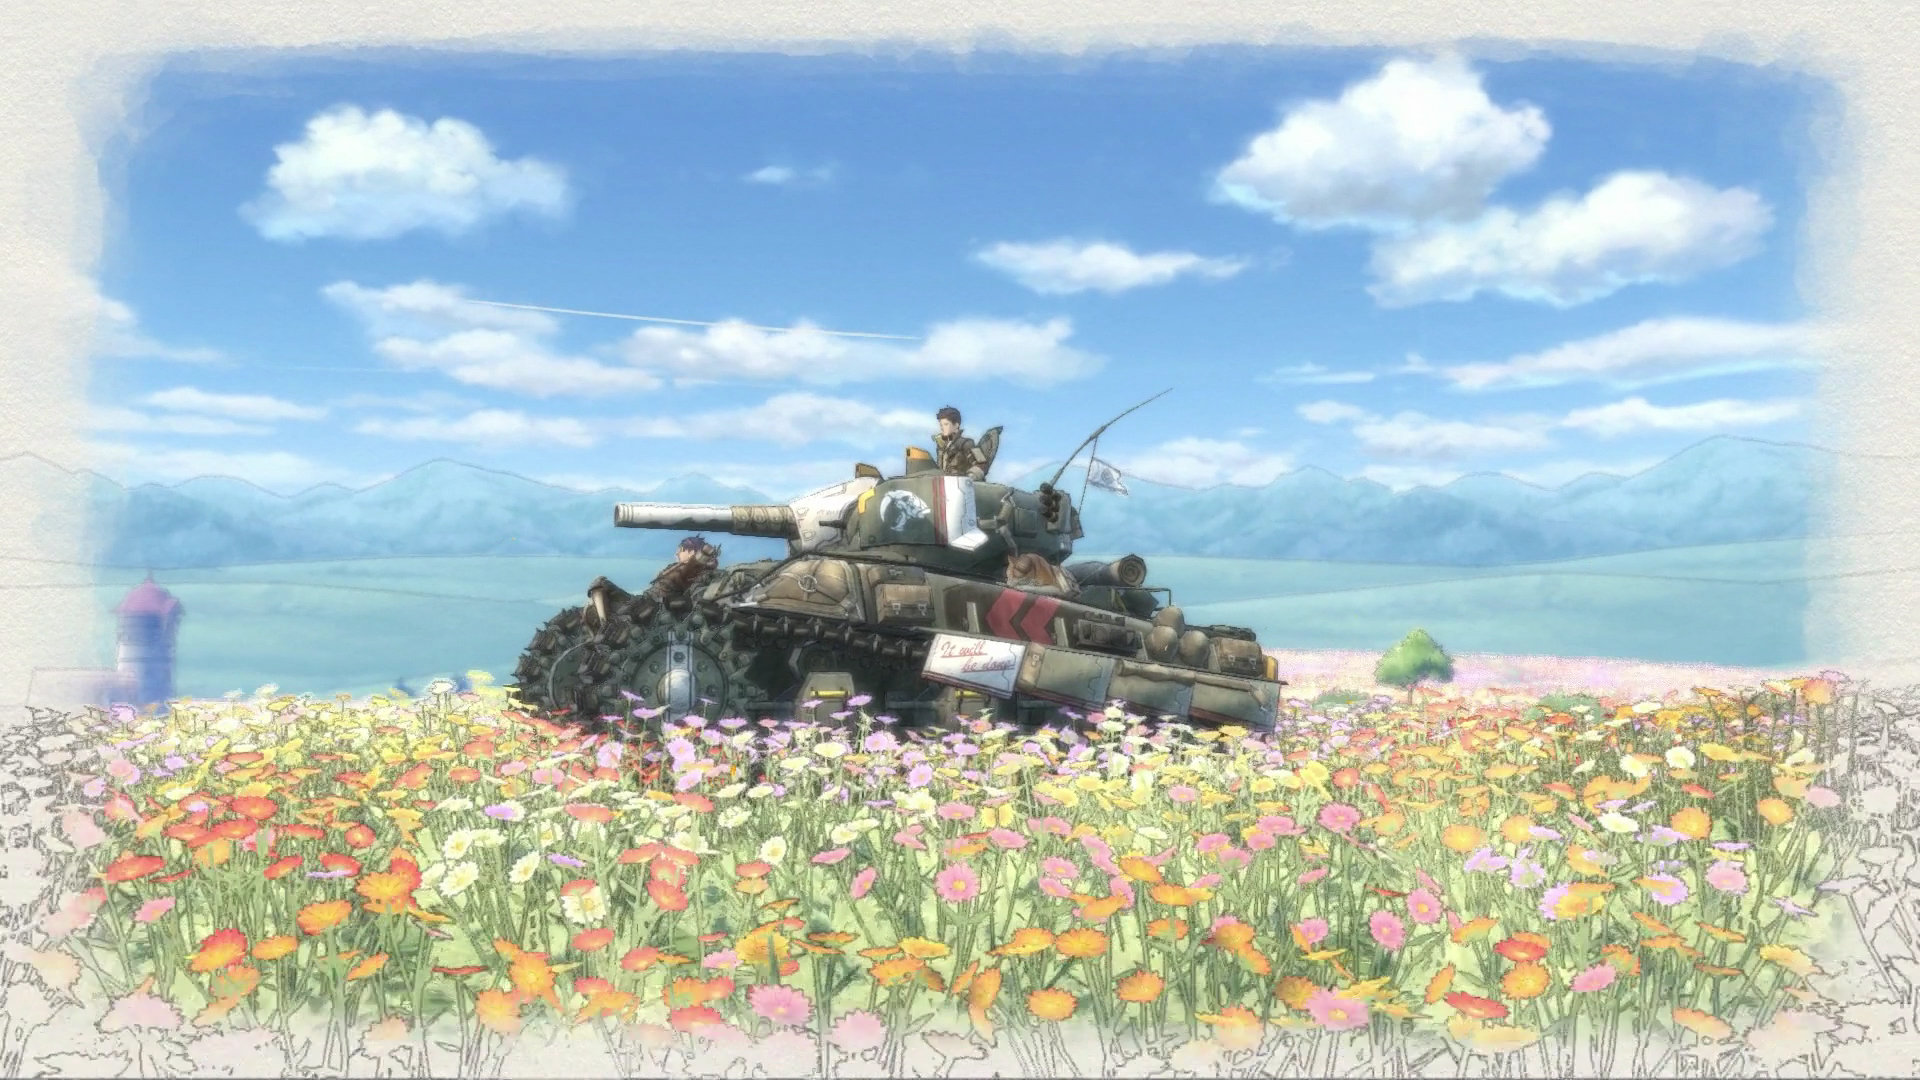 https://media.playstation.com/is/image/SCEA/valkyria-chronicles-4-screen-01-ps4-us-12apr18?$MediaCarousel_Original$